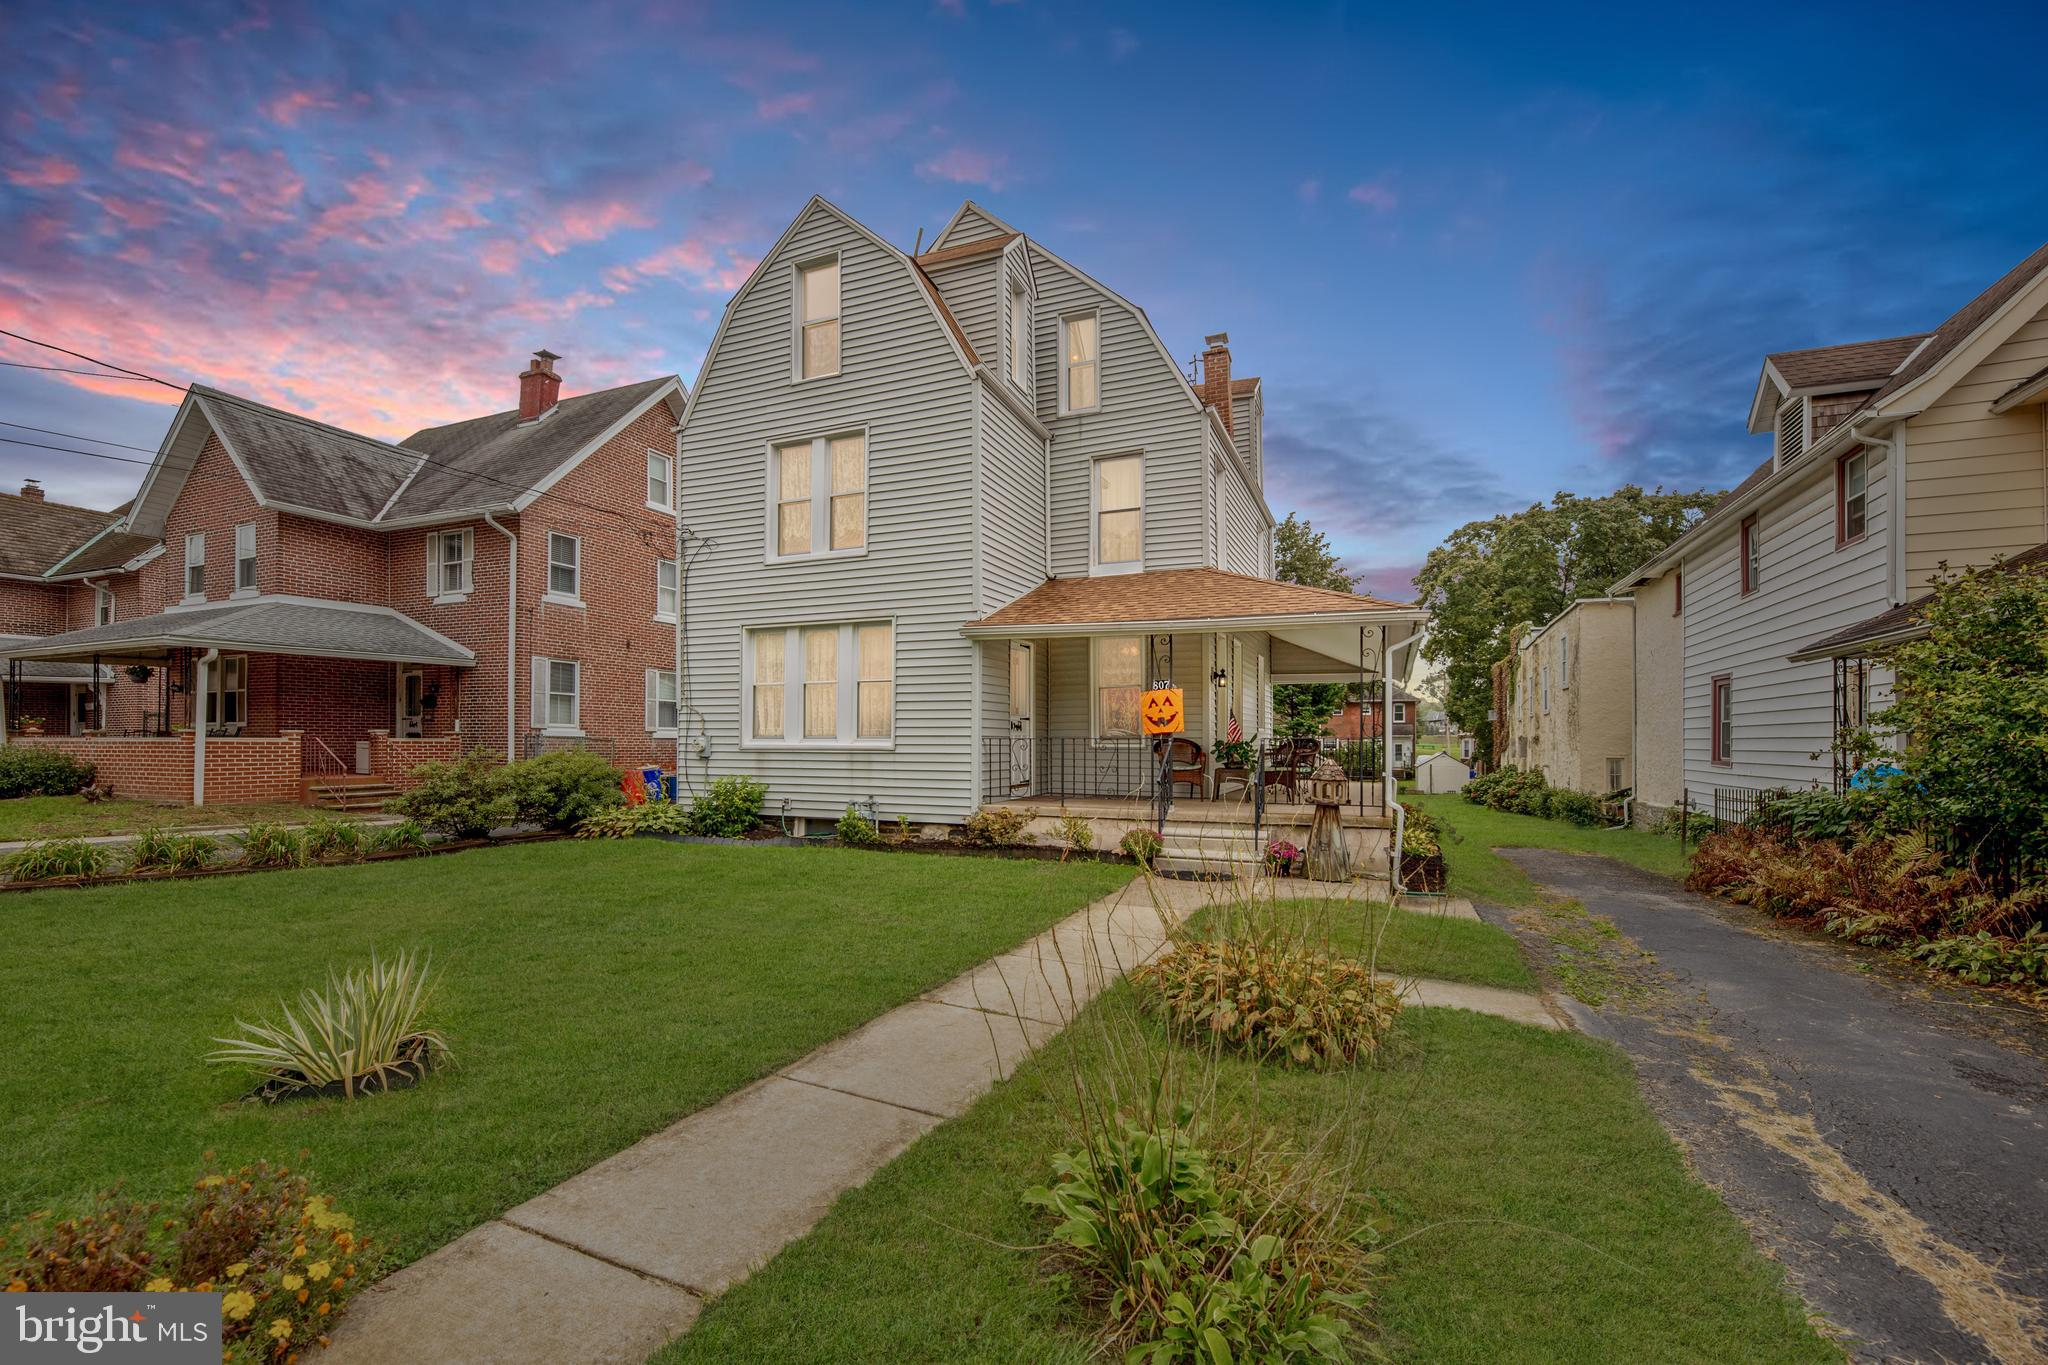 Welcome to 807 Penn Street! This historic 3-story home with wraparound porch was built in 1887 but provides all the amenities a 21st century buyer would want. Notable features include fresh paint throughout, newer central air system (2018), newer 95% efficient heater (2015), refinished hardwoods on the first floor, vinyl windows, and an abundance of natural sunlight from the plentiful windows. Enter the front door into the bright foyer with handsome hardwood floors that carry throughout most of this home. Current living room with ceiling fan and full bathroom with shower could be a great first floor primary suite complete with closet! Access the carpeted laundry room/flex room addition with exit to rear yard from here. On the other side of the foyer is a dining room with ceiling fan that flows into the updated eat-in kitchen with gorgeous all white cabinets,  great countertop space, black and stainless appliances, and a ceiling fan that completes this floorplan. Up the turned staircase find 3 carpeted bedrooms on the second floor that share 2 full hall bathrooms (one with tub and one with shower). The third floor offers 3 more bedrooms plus a huge closet. *** Please call us for the personalized website that we created especially for this home featuring a three-dimensional Matterport tour, Virtual Reality Walkthrough, detailed Floor Plan, professional photography, aerial drone footage, and community video. Disclaimer: Some photos have been digitally enhanced. *** Don't miss an opportunity to live in one of the area's most sought-after towns, with easy access to an exceptional library and a quaint downtown that includes the Bryn Mawr Farmers Market & Bryn Mawr Film Institute, the express train to Philadelphia, and the entire Main Line right at your fingertips. Proximity to prestigious schools, World-class shopping, restaurants, theatres, parks, commuter highways, and more. Top-Rated Haverford Township Schools!